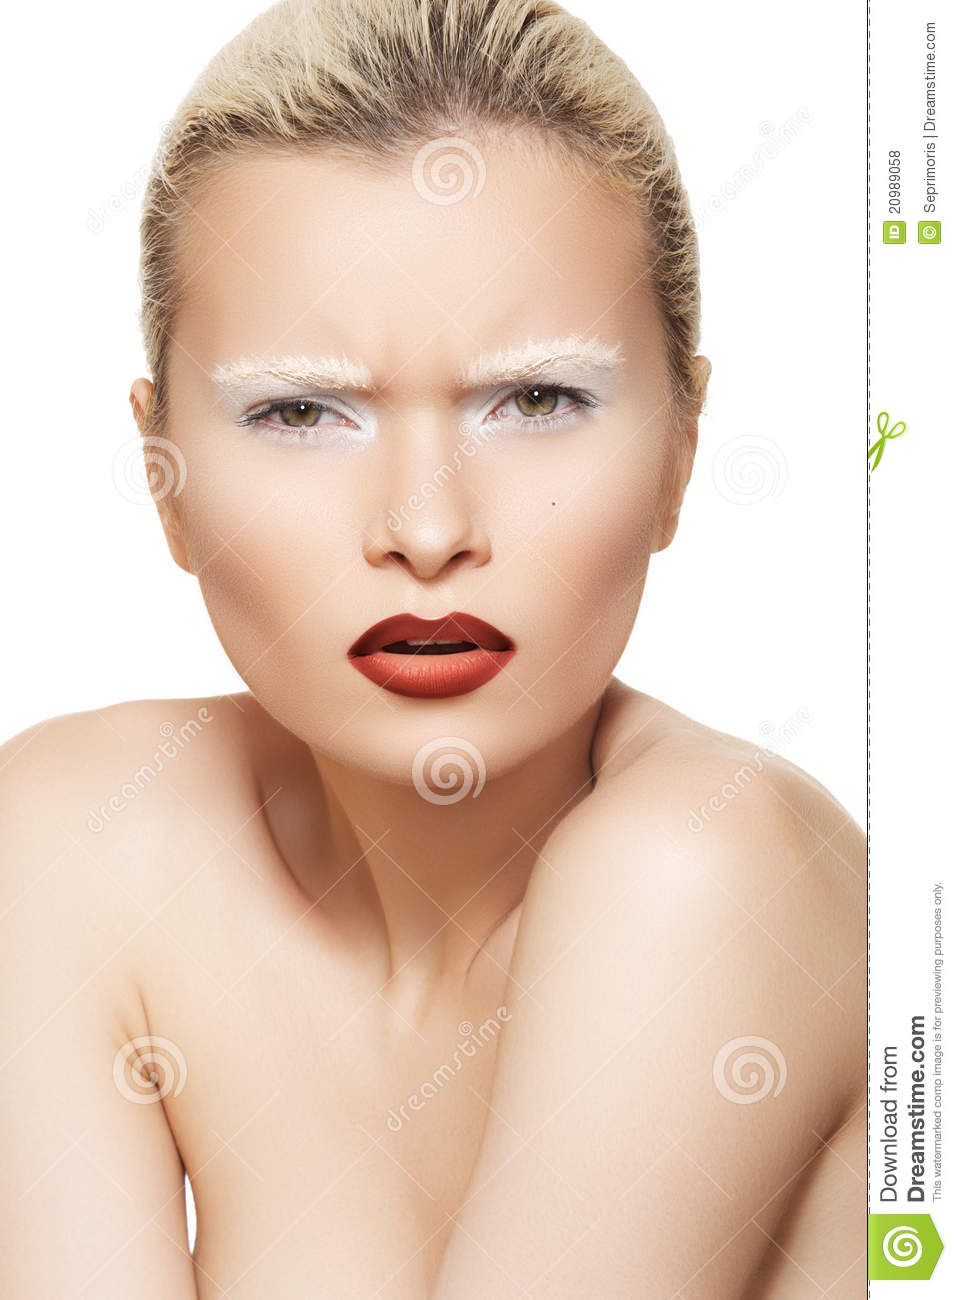 Facial Emotion High Fashion Make Up On Model Face Royalty Free Stock Photos Image 20989058